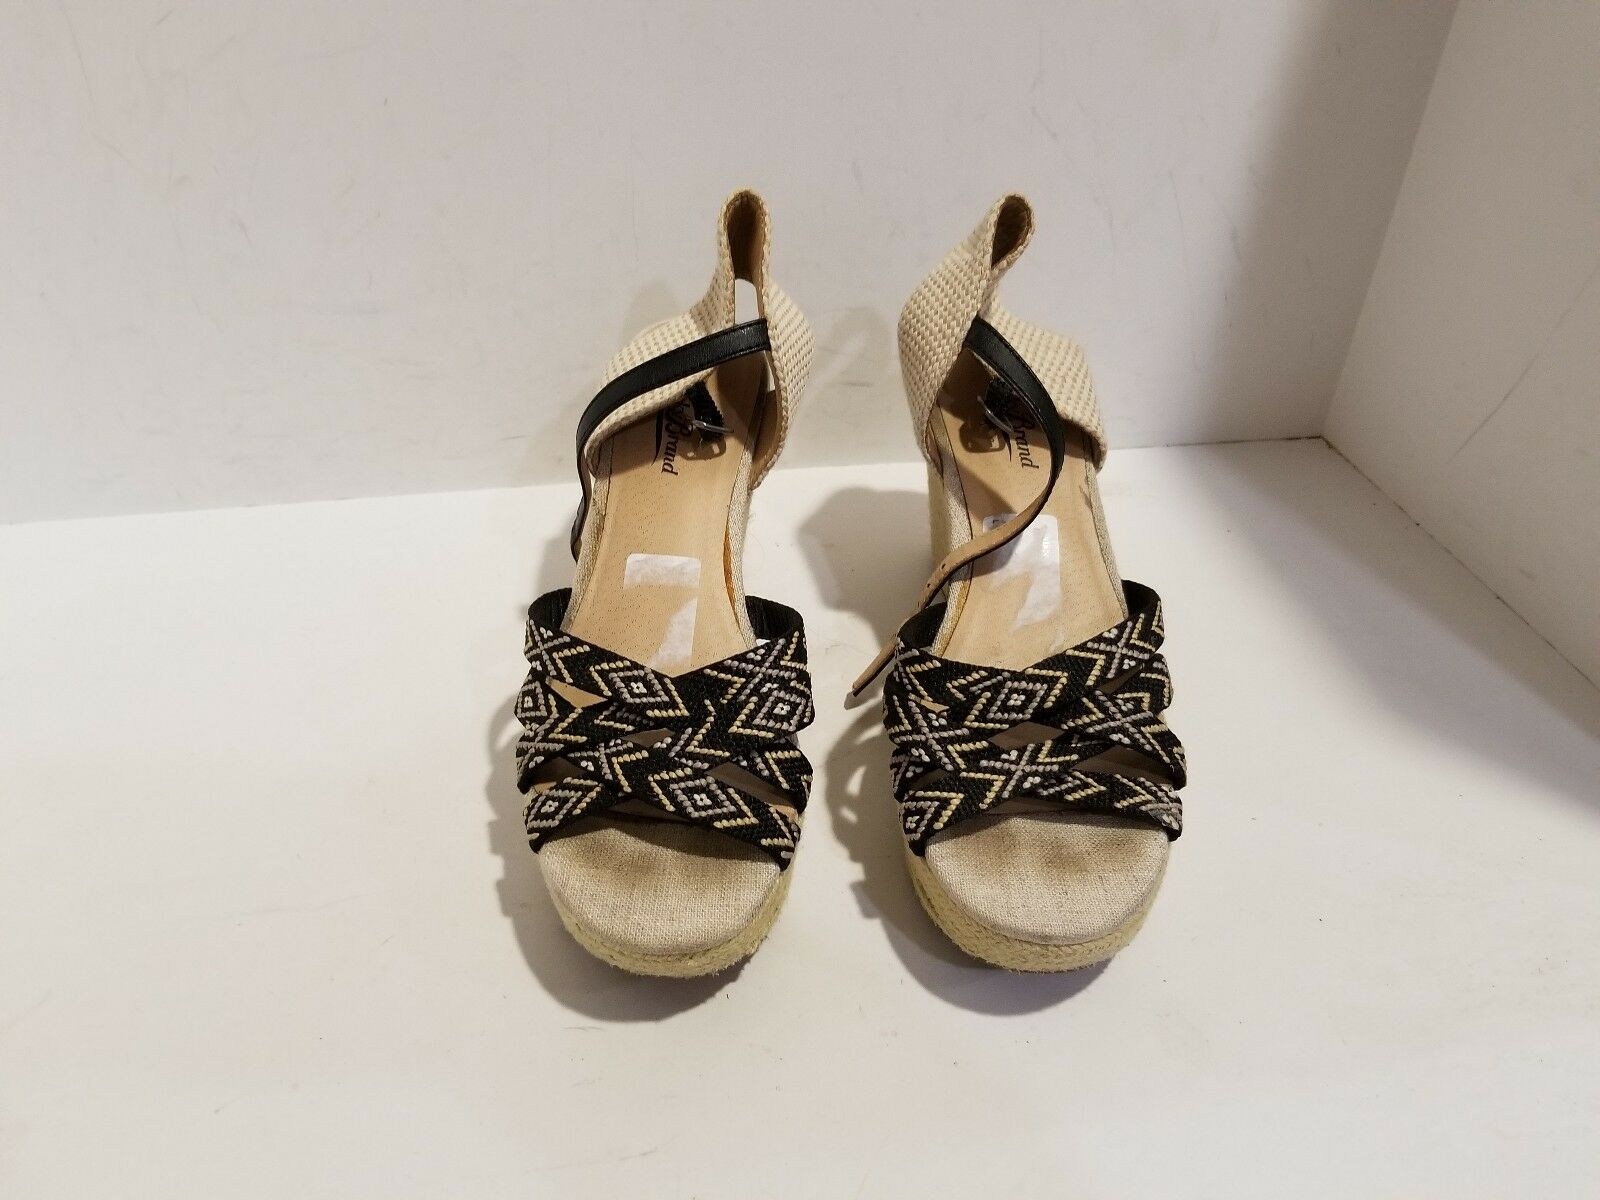 Lucky Wedge Womens Multi Color Wedge Lucky Sandals Size 7.5 M 4ca156